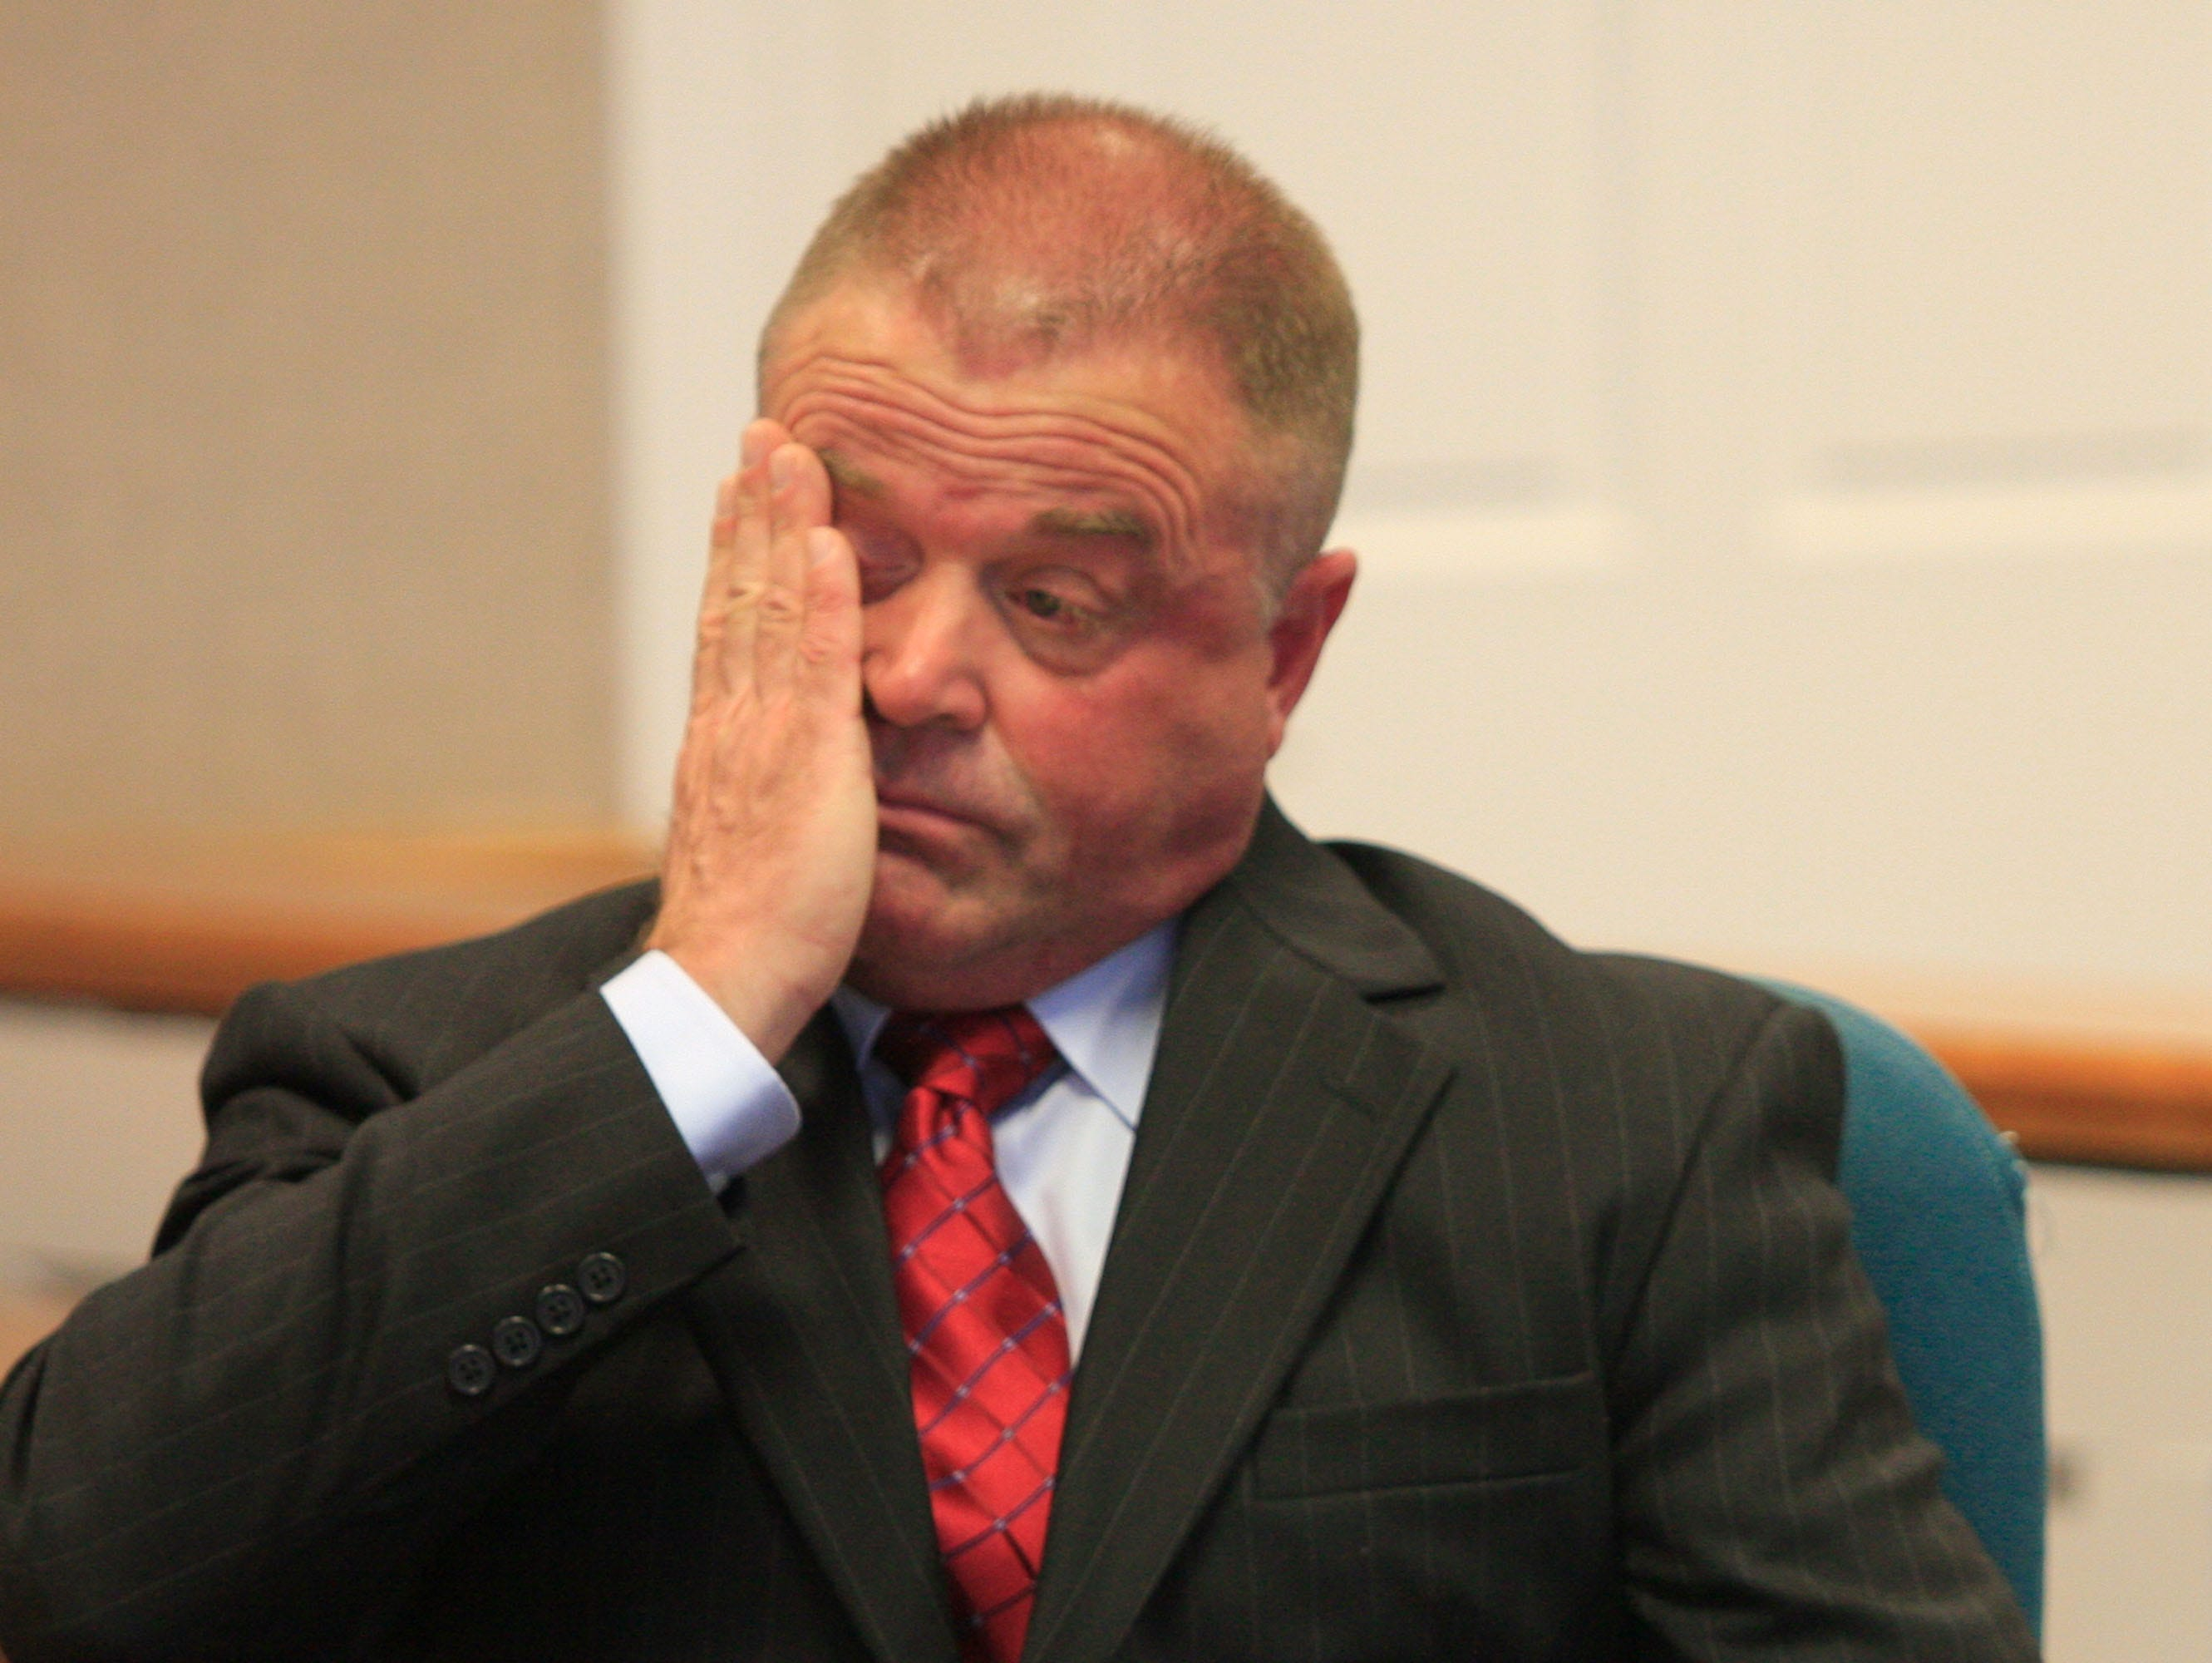 Former Vergennes, Vt., Police Chief Michael Lowe wipes away a tear during sentencing proceedings at Mahady Courthouse in Middlebury, Vt. on Wednesday, April 28, 2010. The former Vermont lawman who became so addicted to prescription drugs that he used underlings to illegally acquire them was sentenced Wednesday to six months in prison.